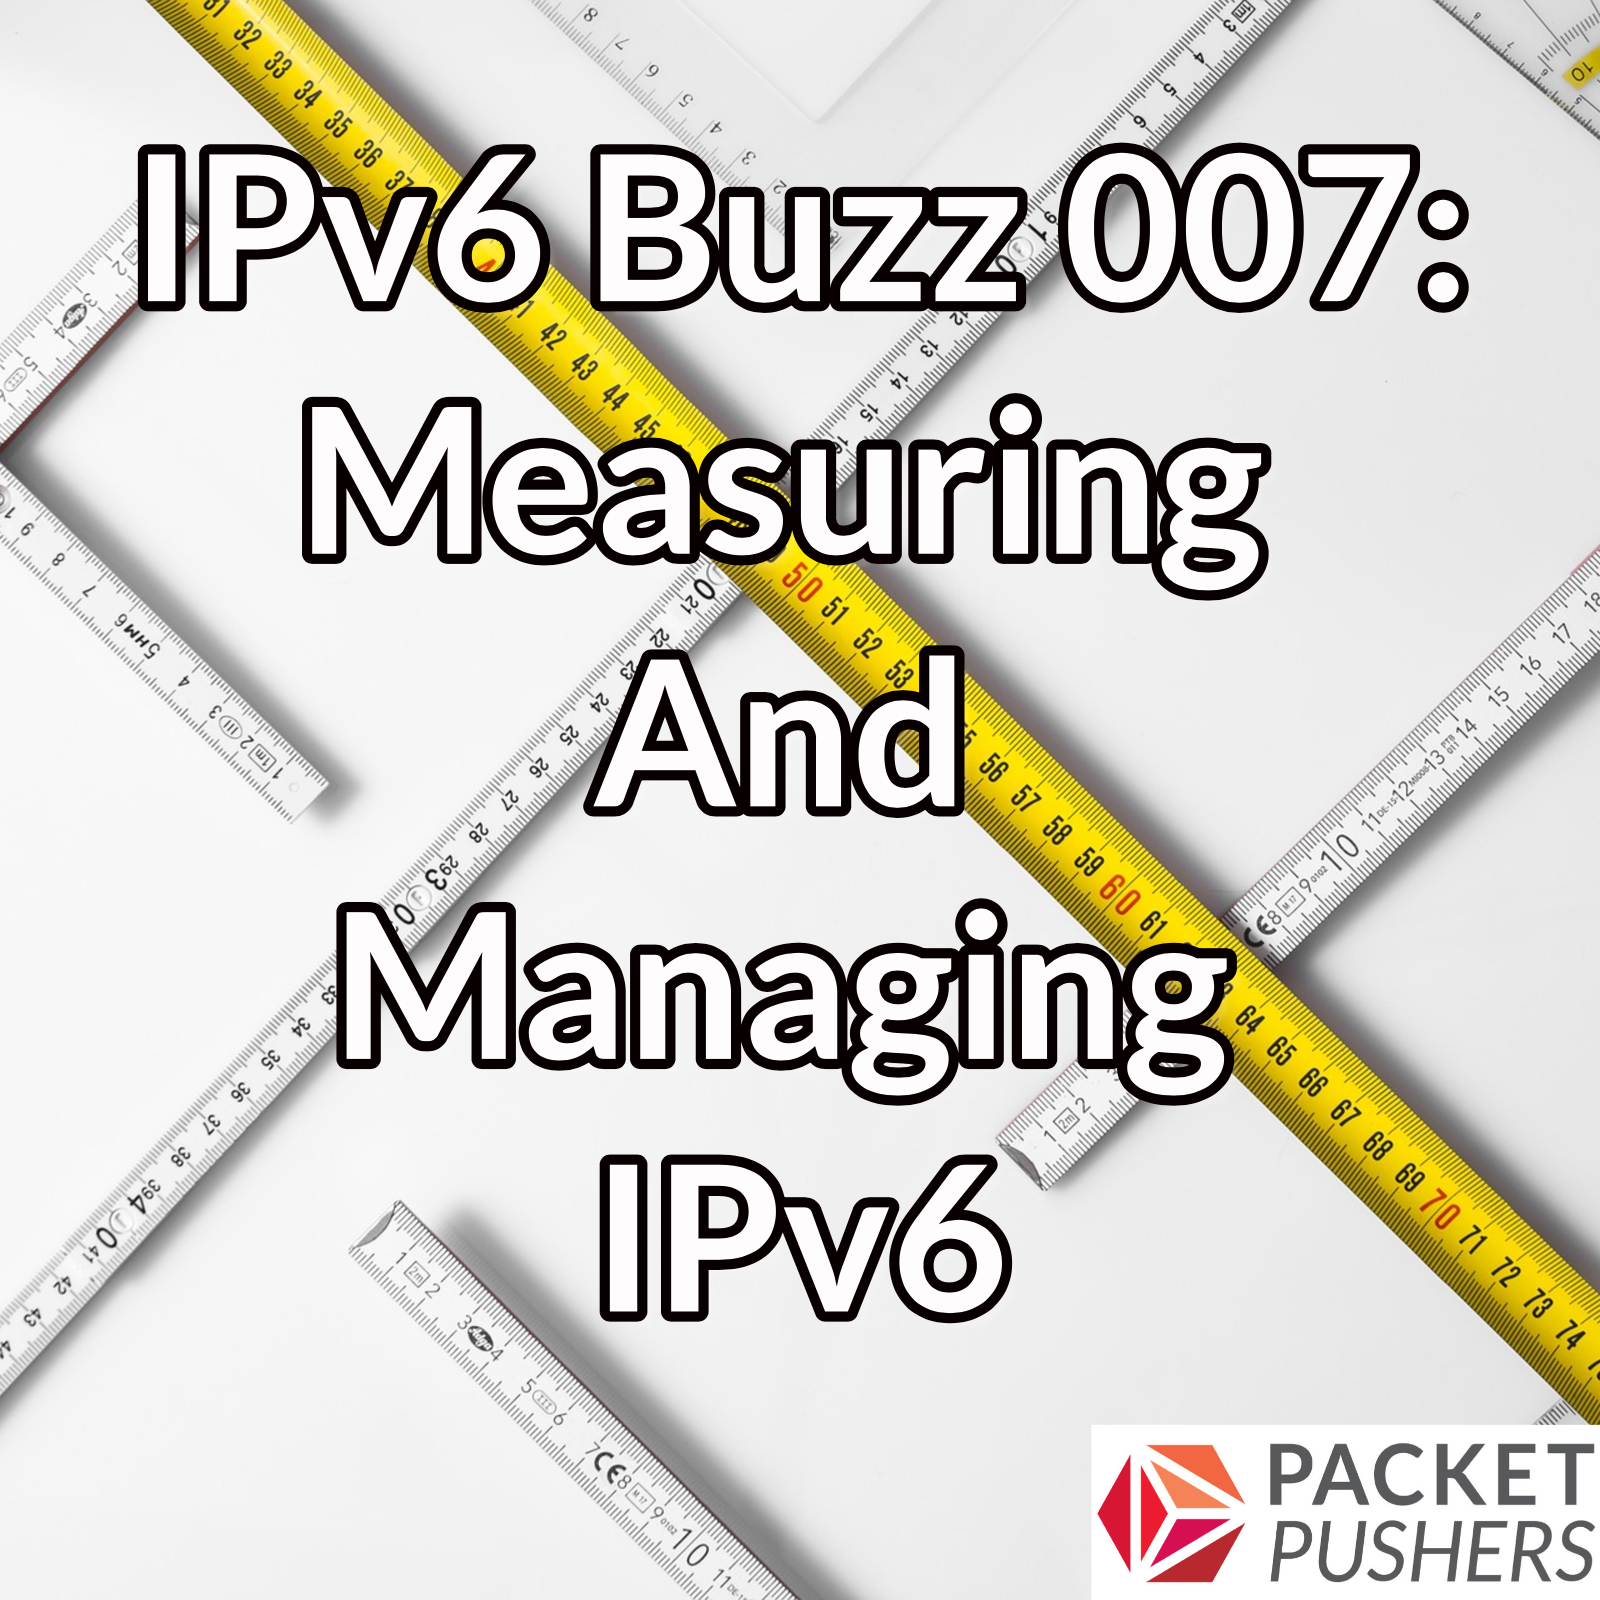 Measuring and Managing IPv6